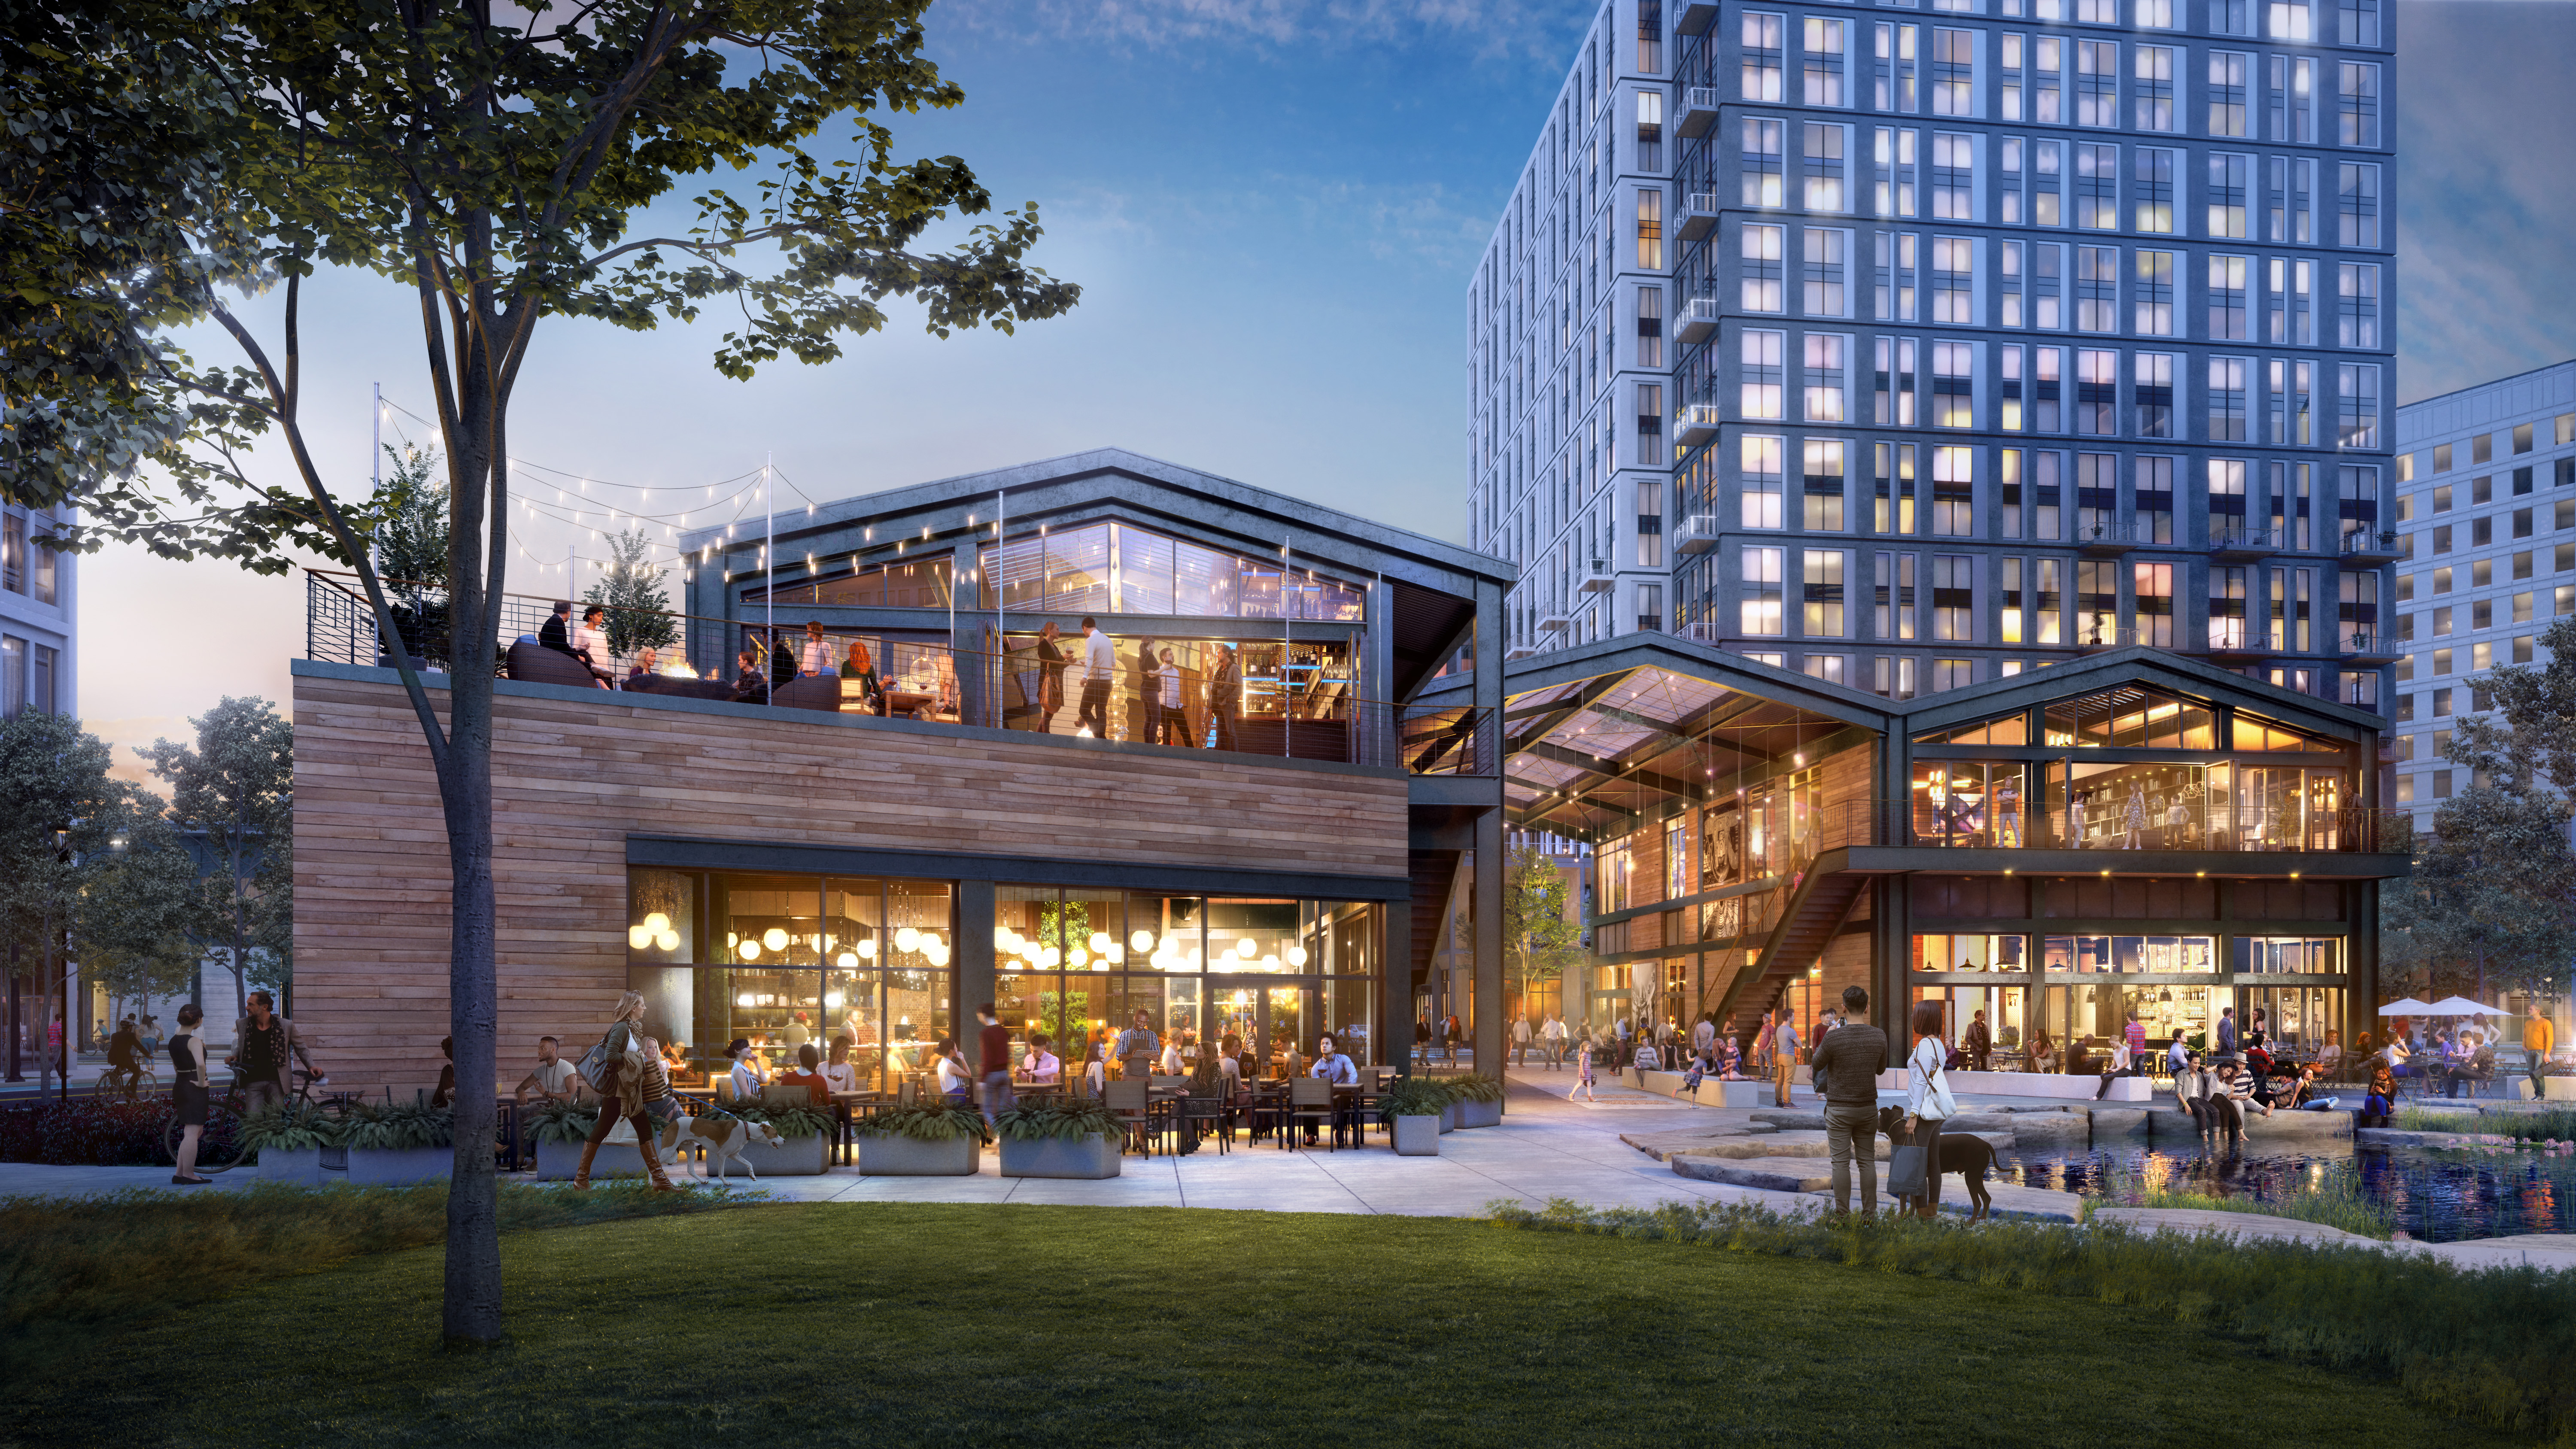 Puritan & Co. Team Plans New Restaurant With Rooftop Terrace Cocktail Bar